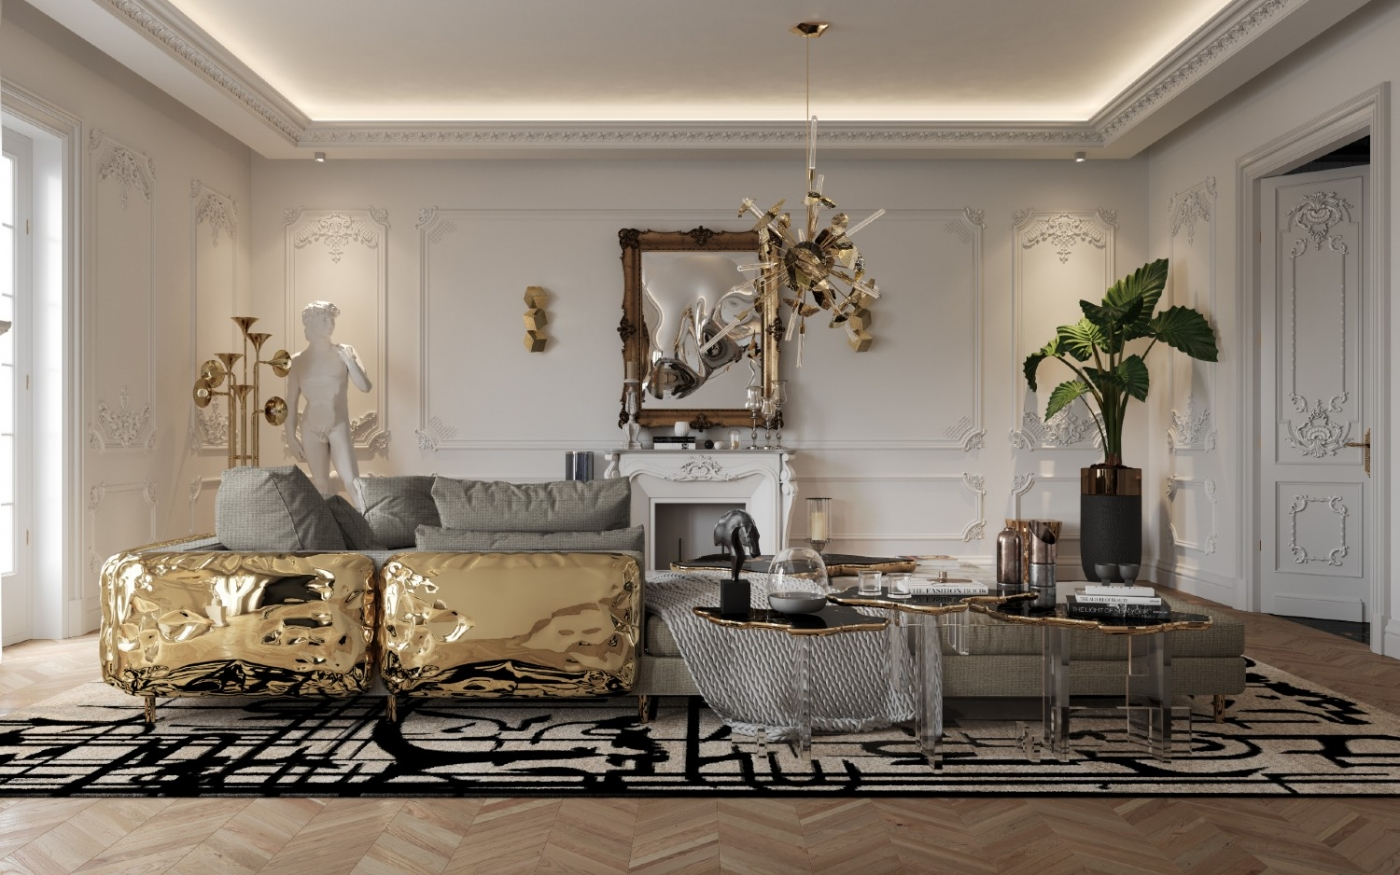 Get The Look Of Parisian Penthouse's Living Room Design ft living room design Get The Look Of Parisian Penthouse's Living Room Design Get The Look Of Parisian Penthouses Living Room Design ft 1400x875